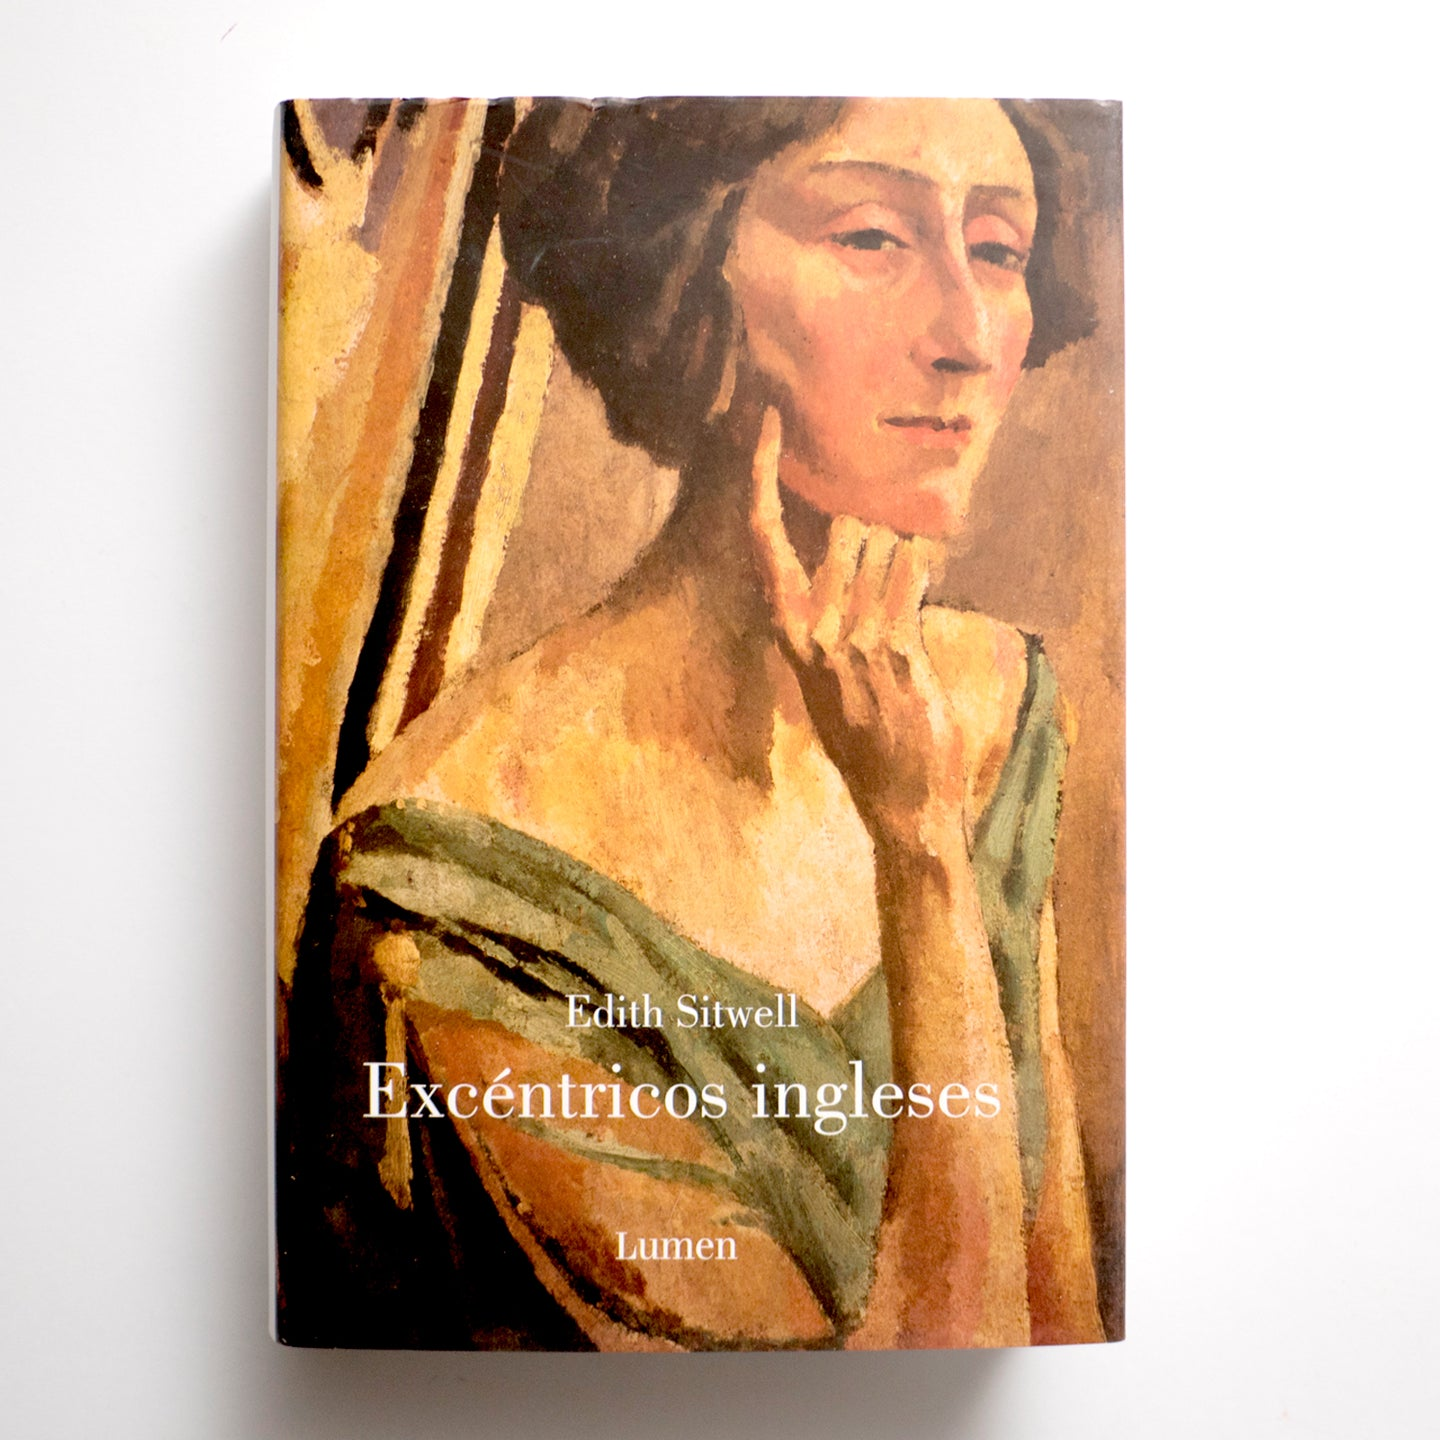 EDITH SITWELL | Excéntricos ingleses